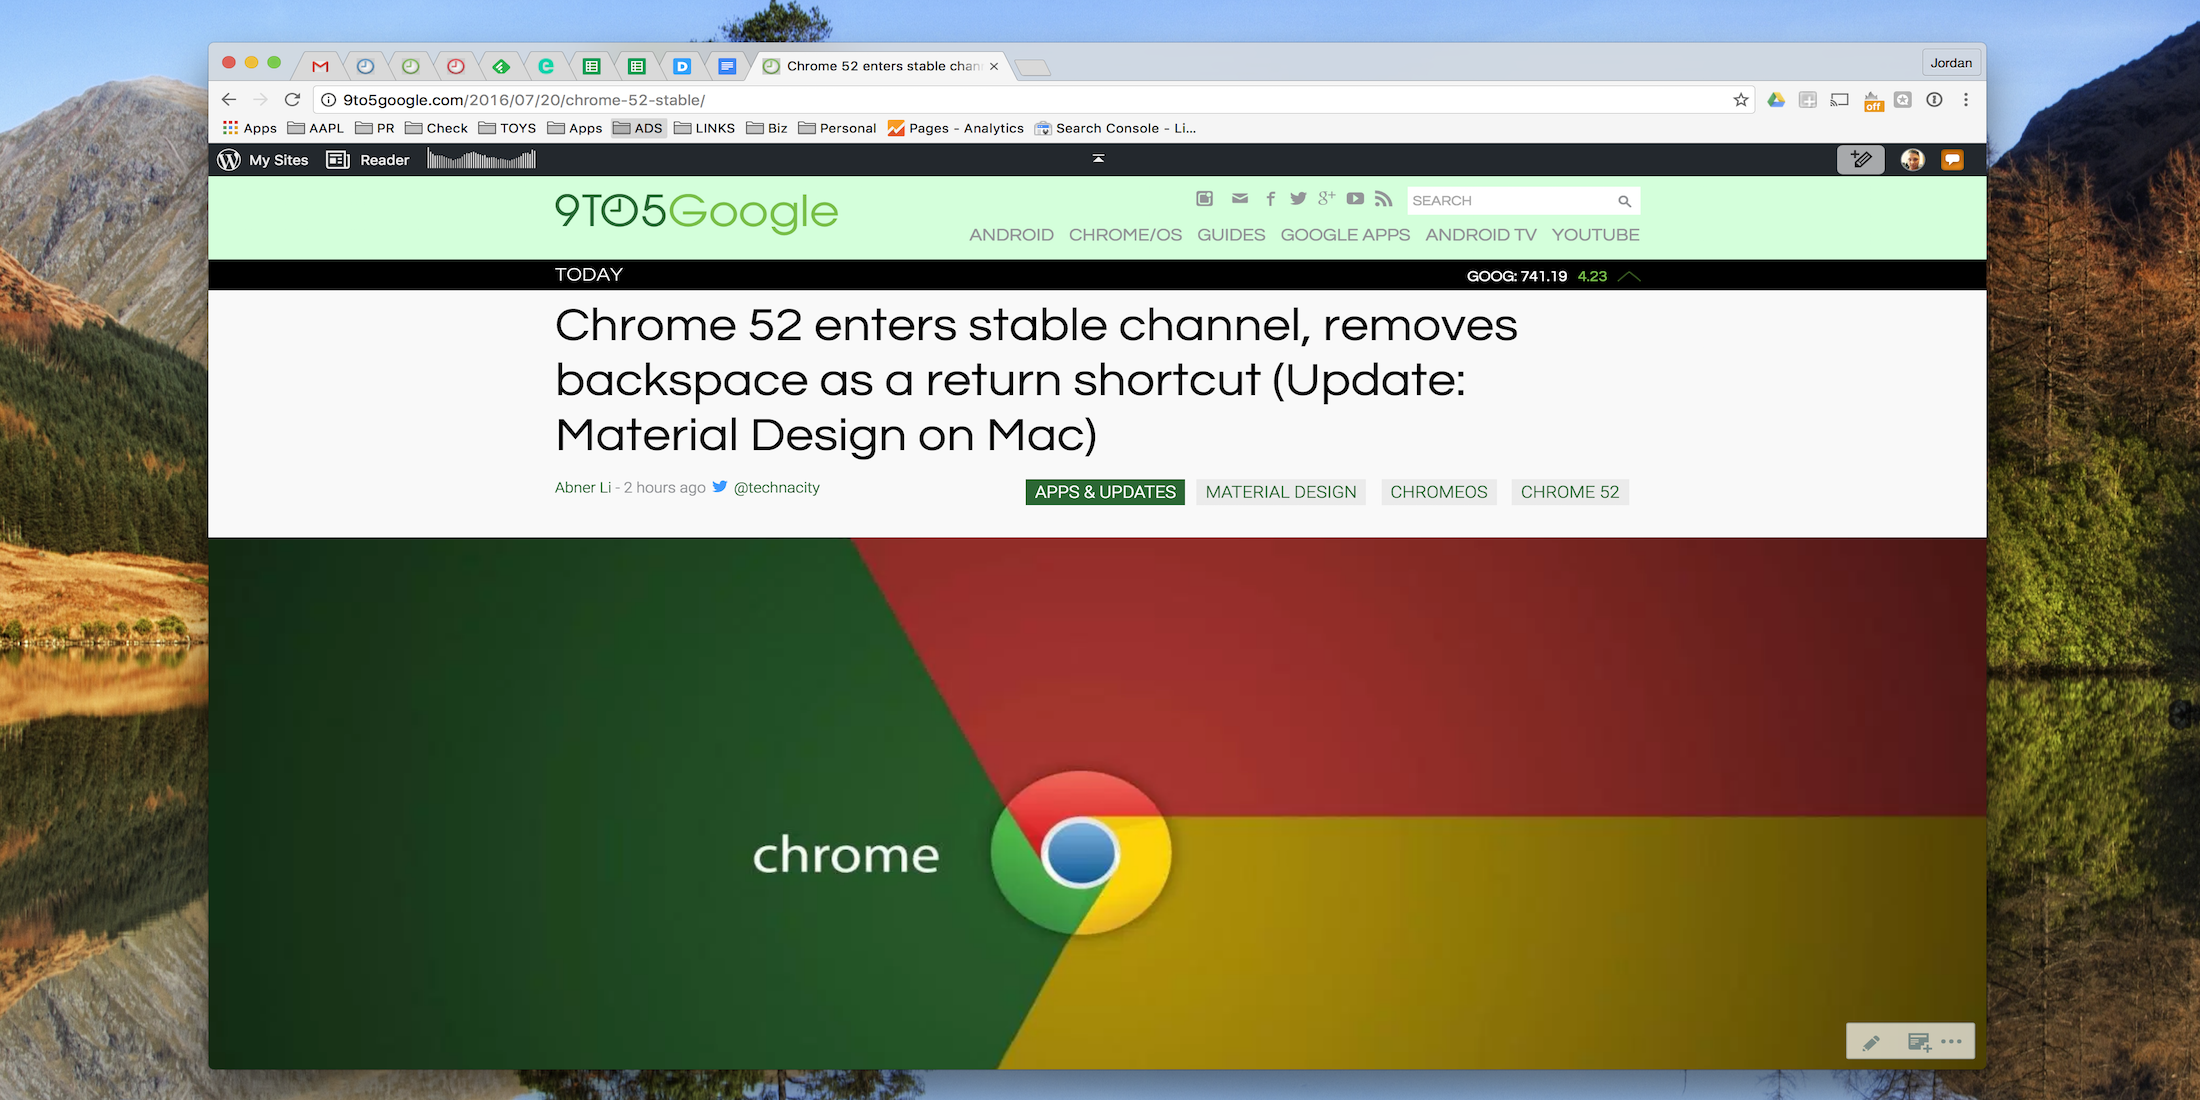 Chrome-52-Material-Design-Mac